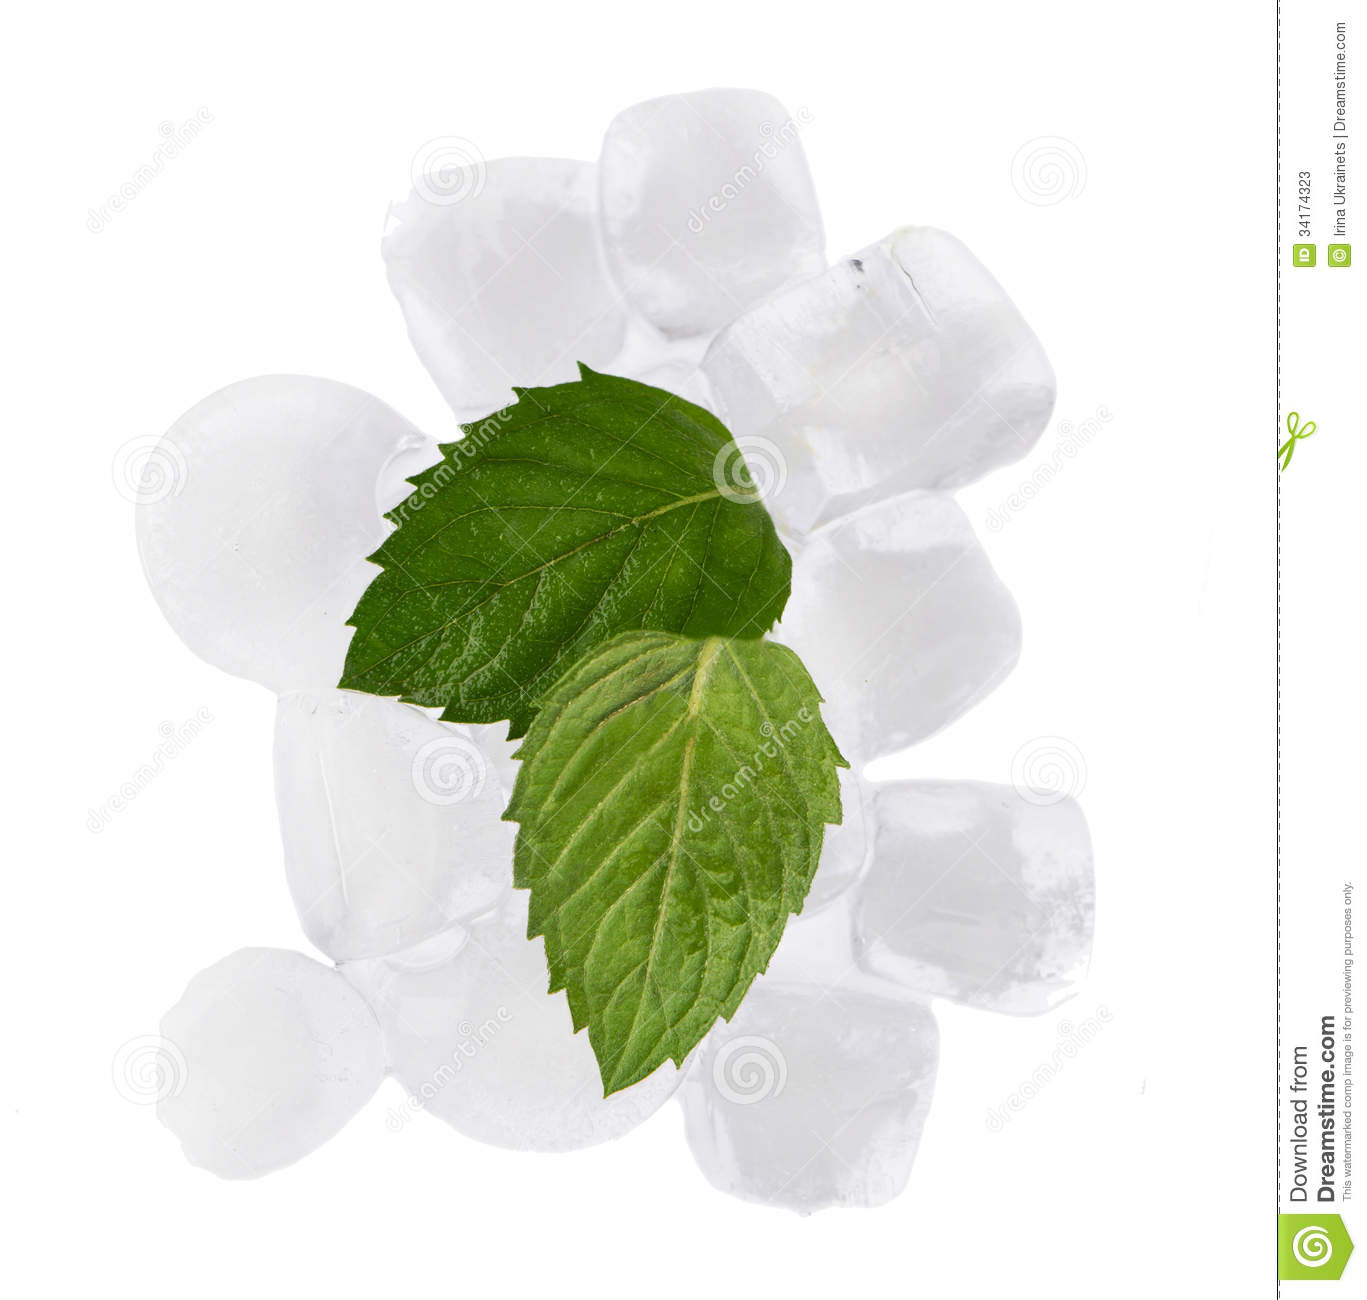 Ice Cubes, Mint Sheets Stock Photos - Image: 34174323